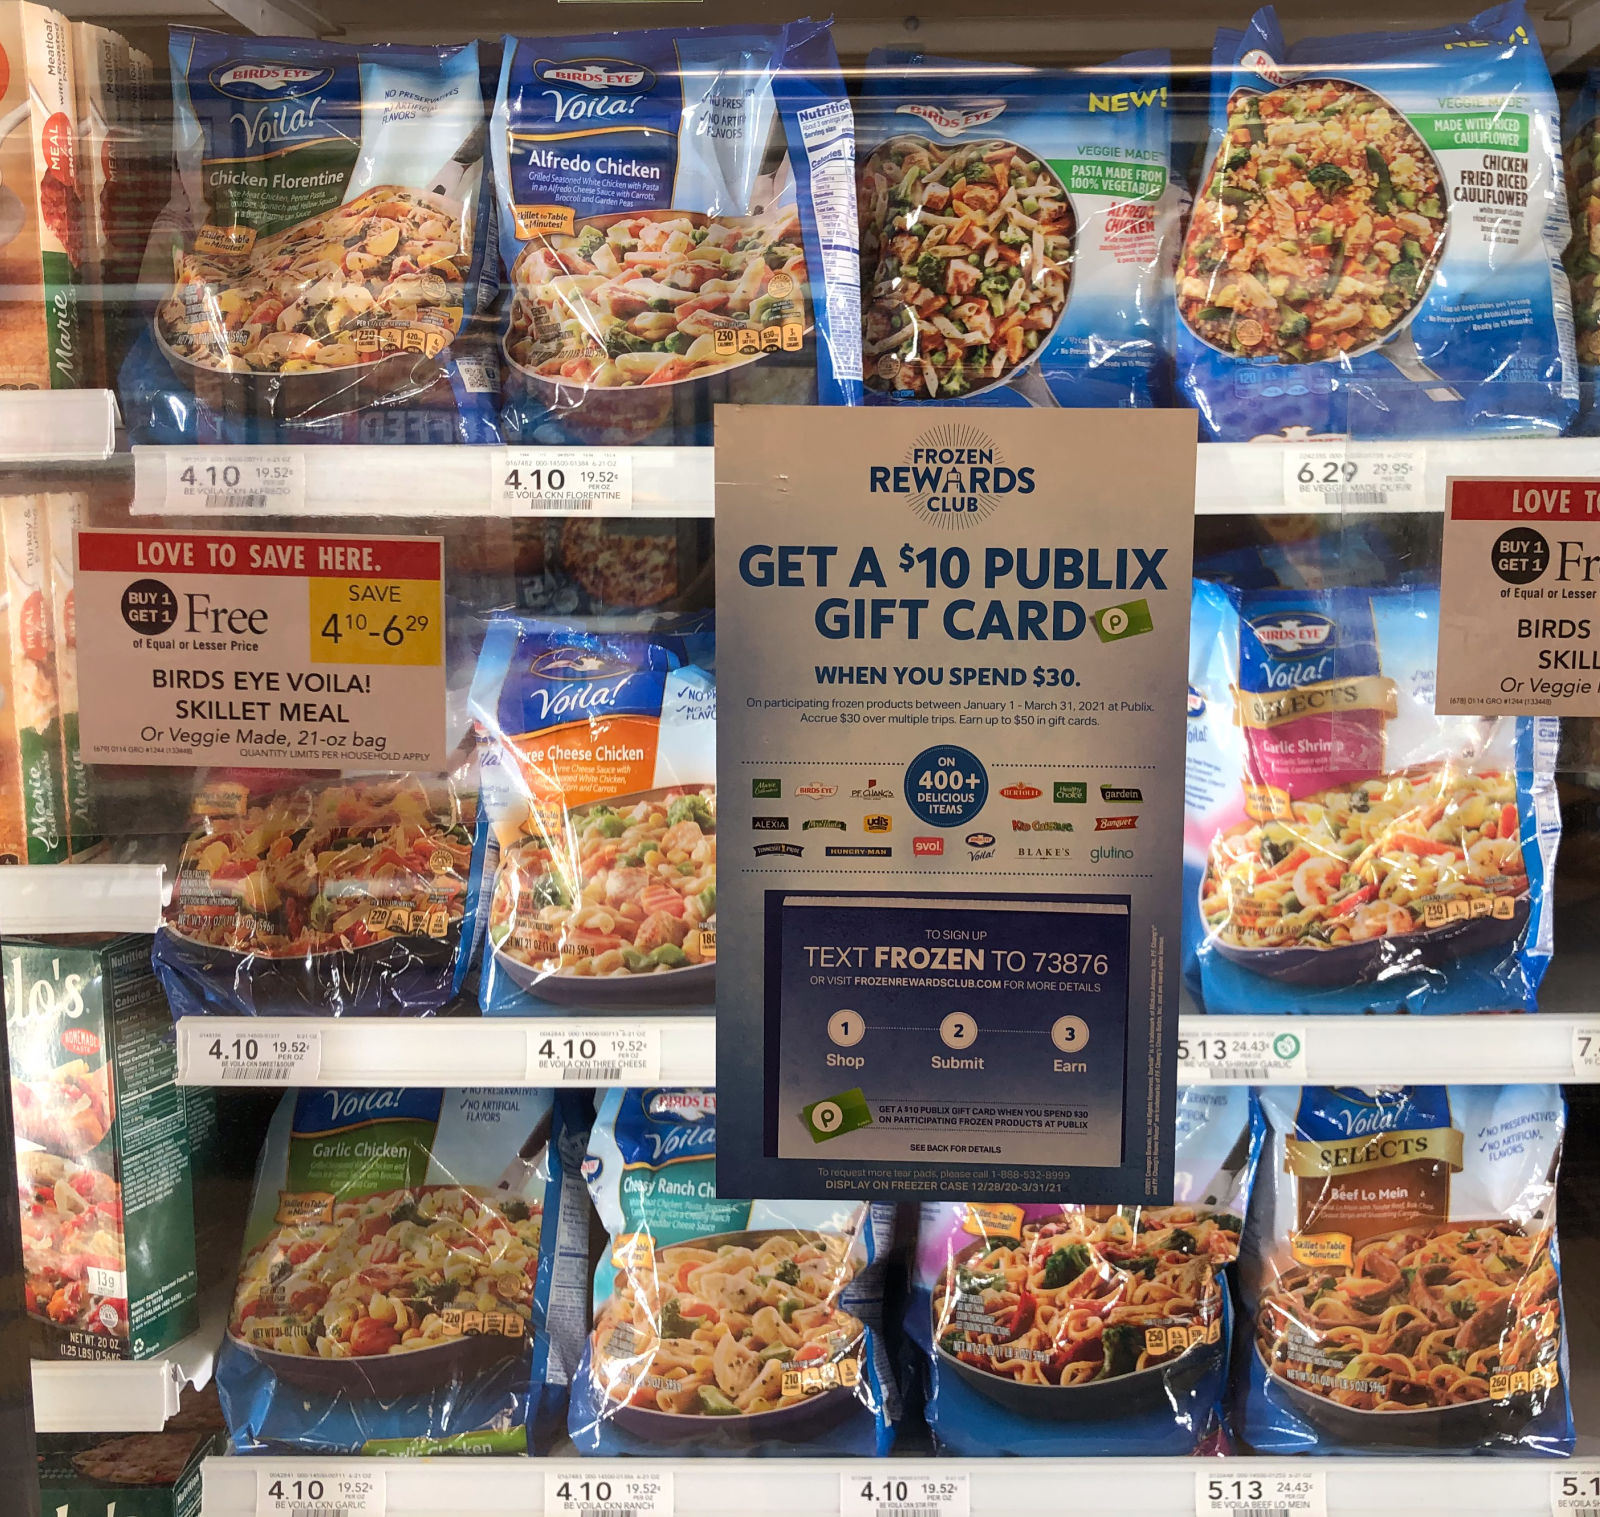 The Frozen Rewards Club Has Returned For 2021 - Earn Up To $50 In Publix Gift Cards! on I Heart Publix 5